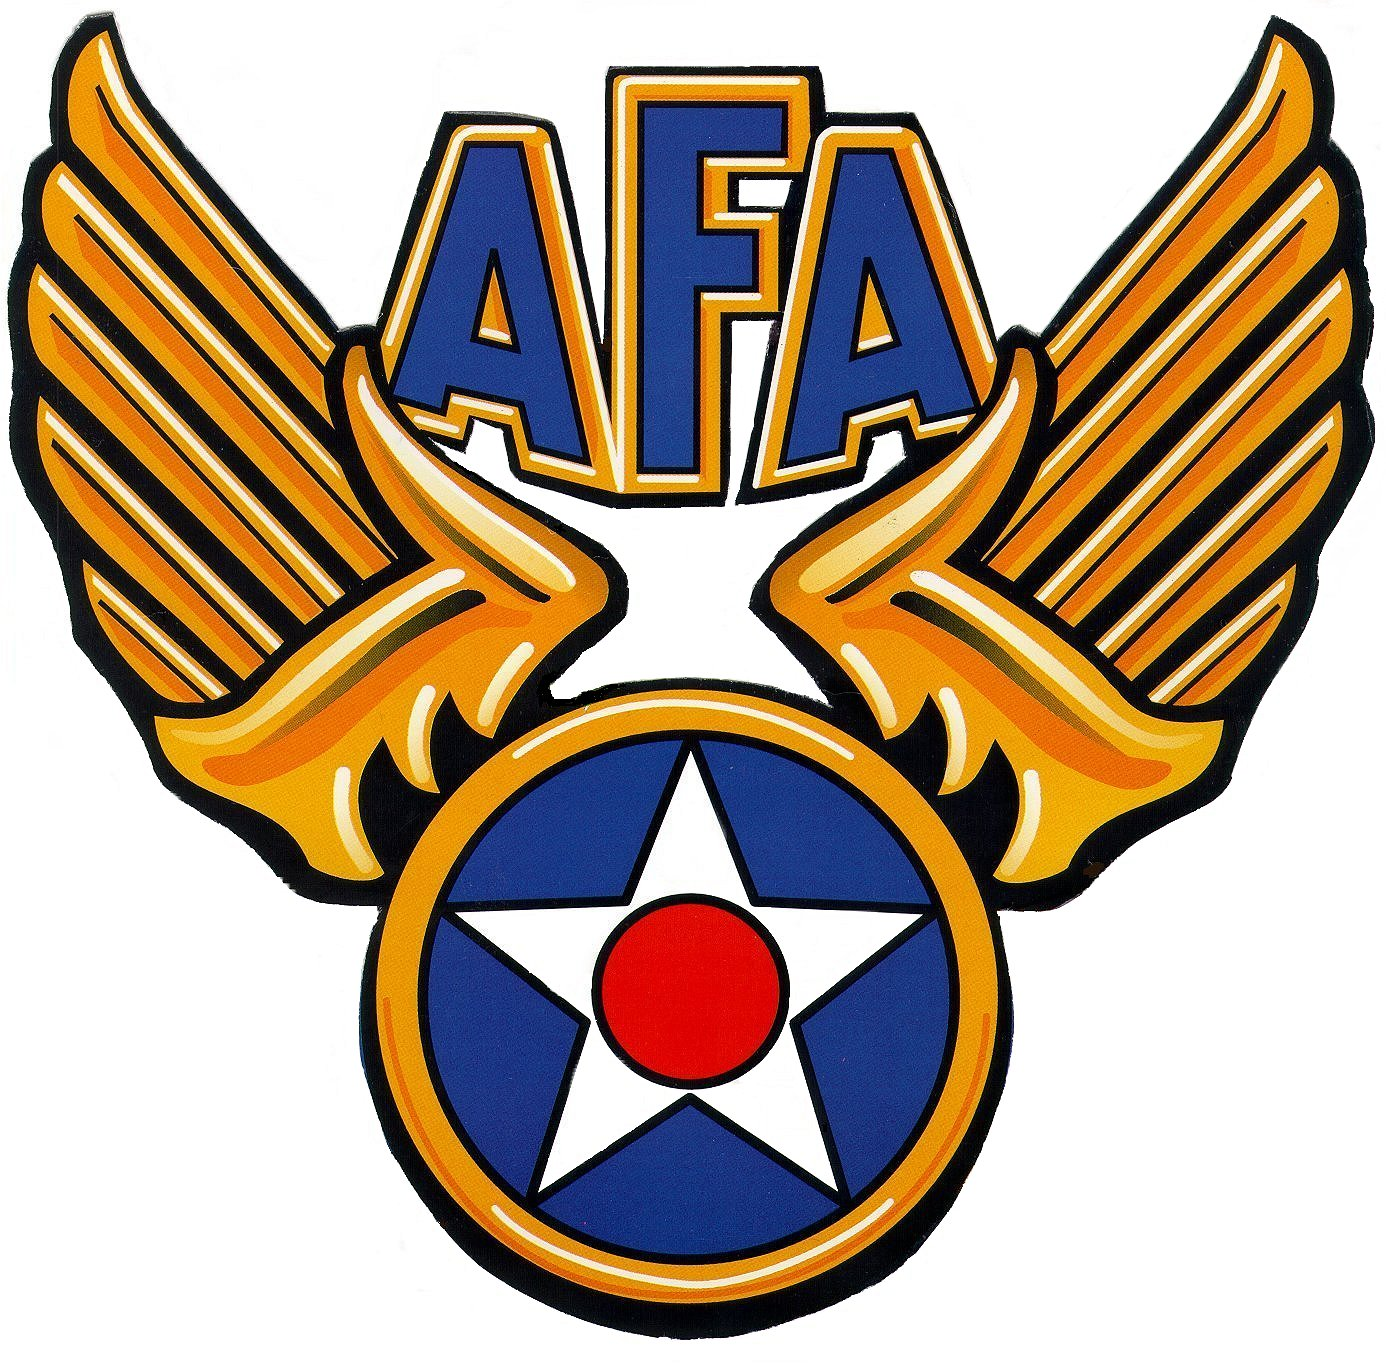 Usaa Contact Us >> Air Force Association Taps USAA for Financial Services